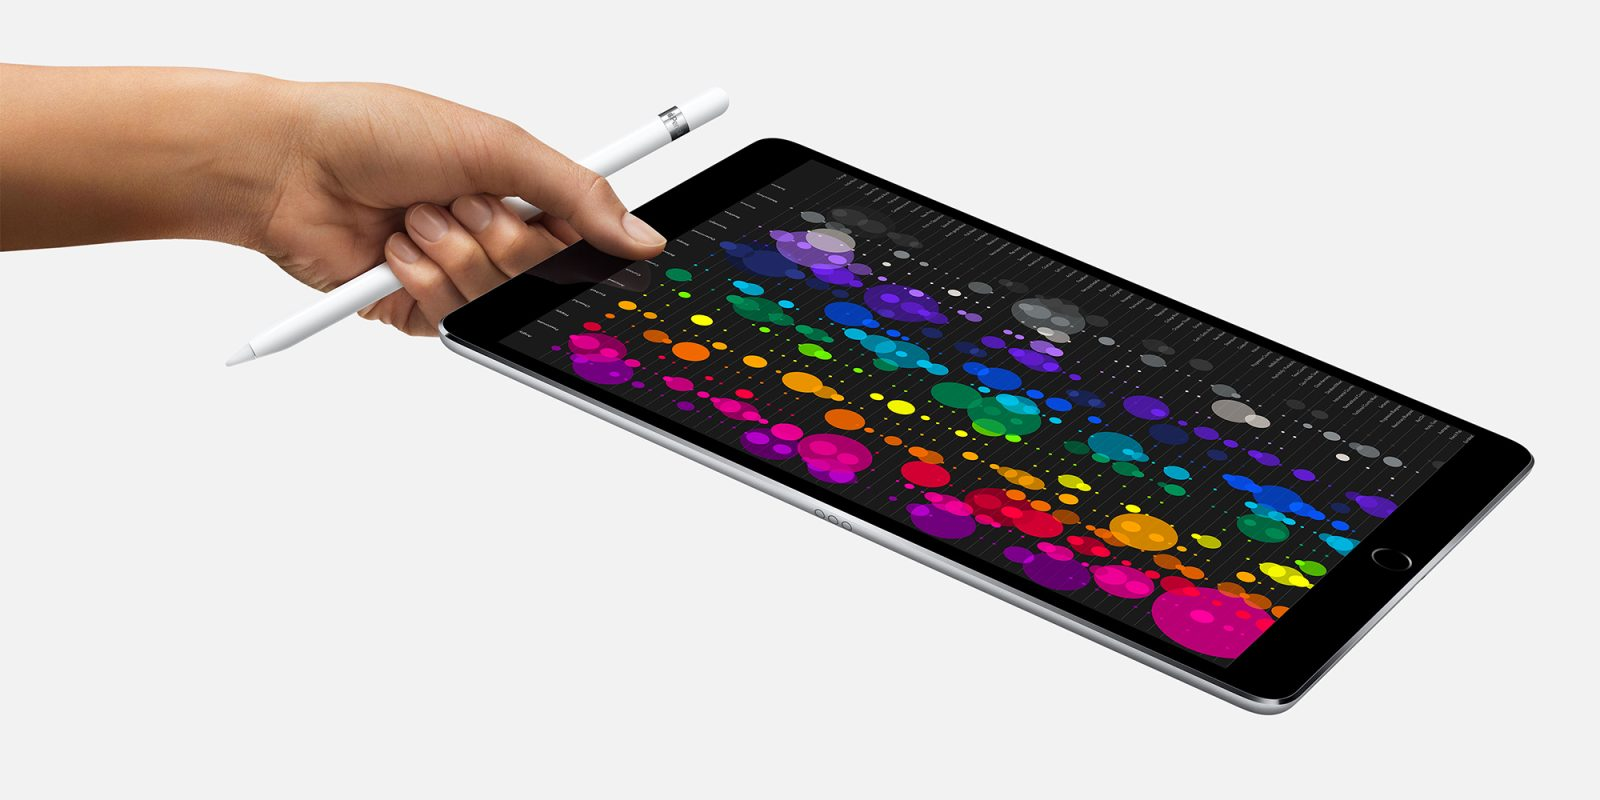 Benchmark tests show new iPad Pro models outperform MacBook Pro in